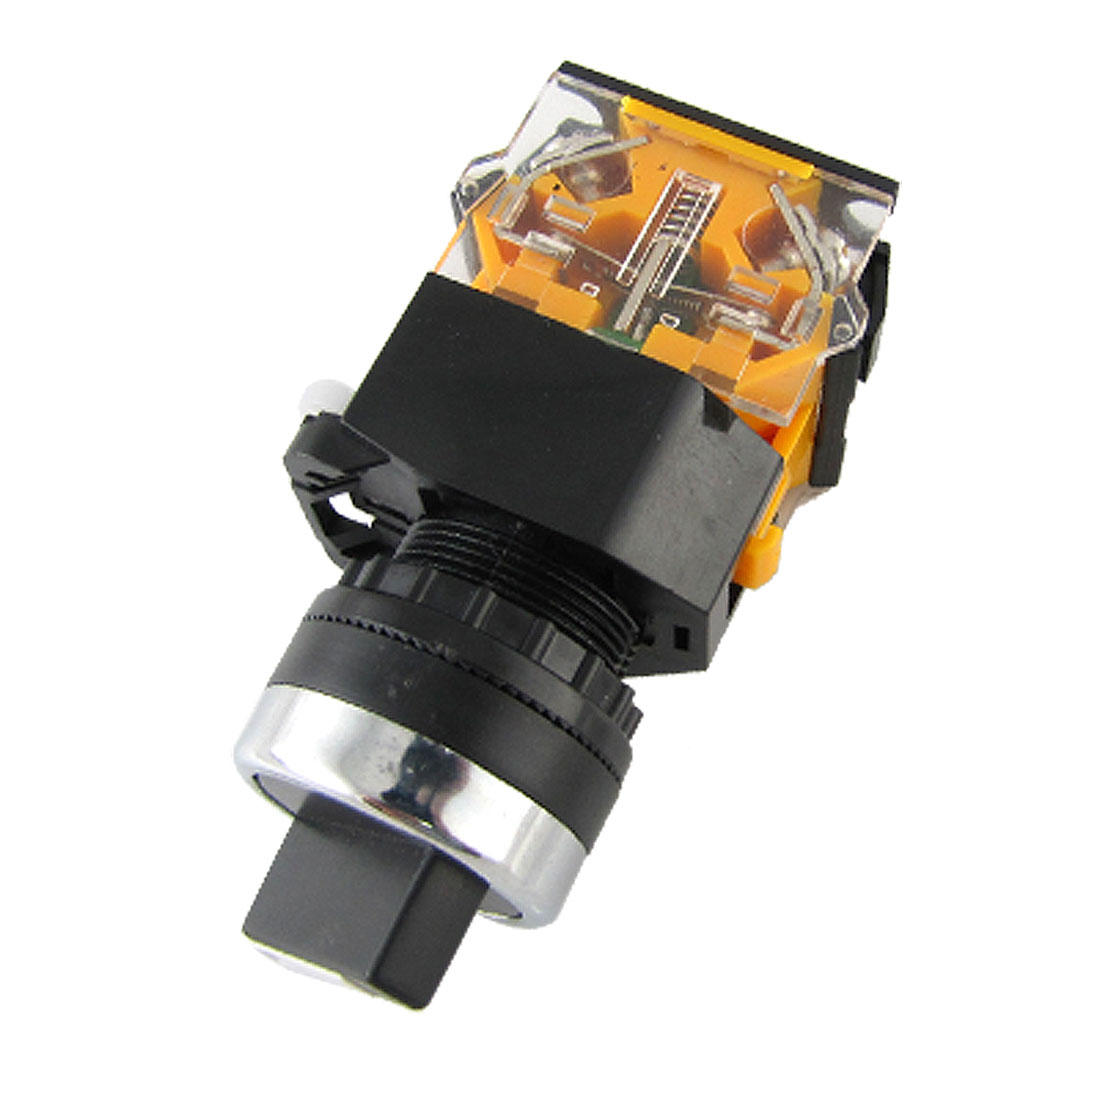 Emergency N/O Locking Turn Rotary Switch 660V 10A